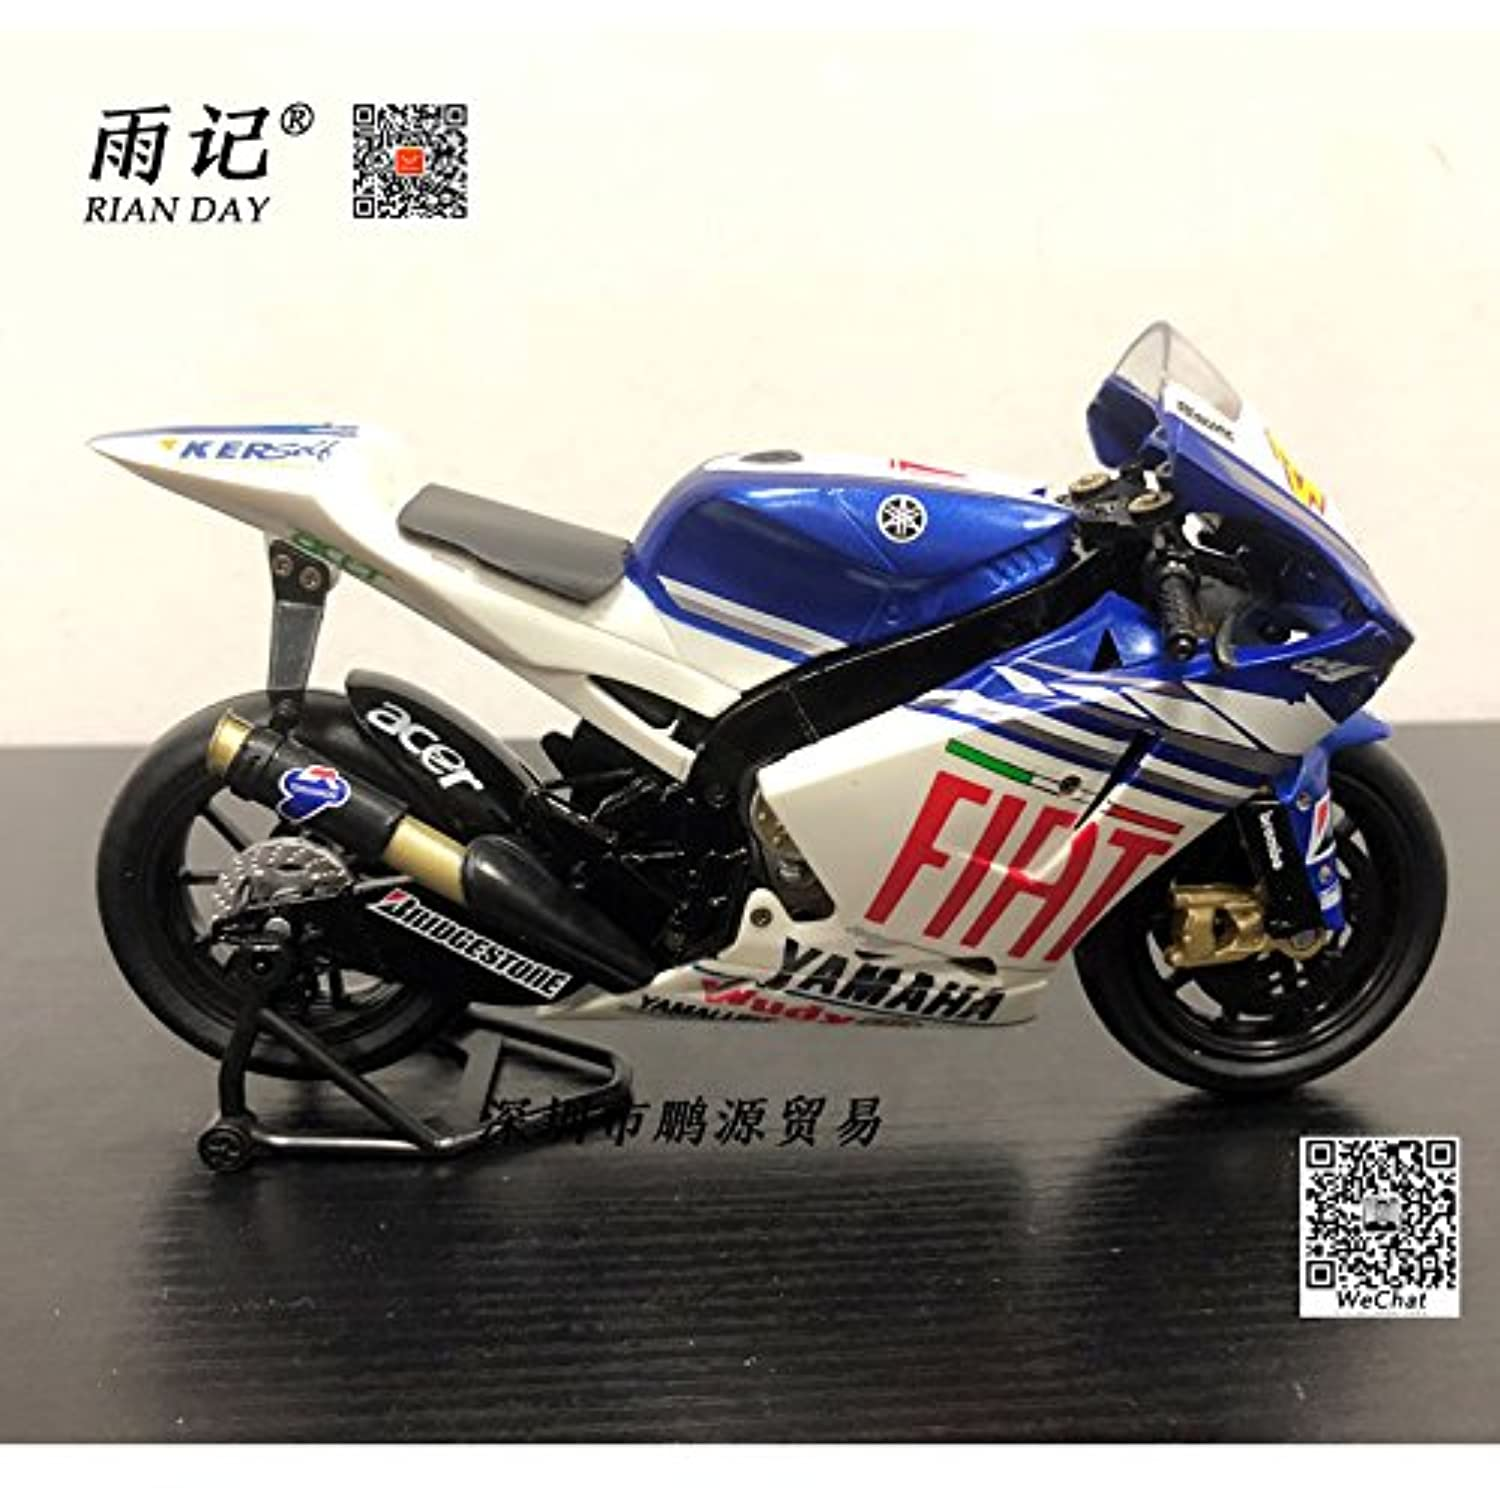 NEWRAY 1/12 Scale MotoGP Motorbike YAMAHA YZR-M1 2013 FACTORY Racing Diecast Metal Motorcycle Model Toy For Collection